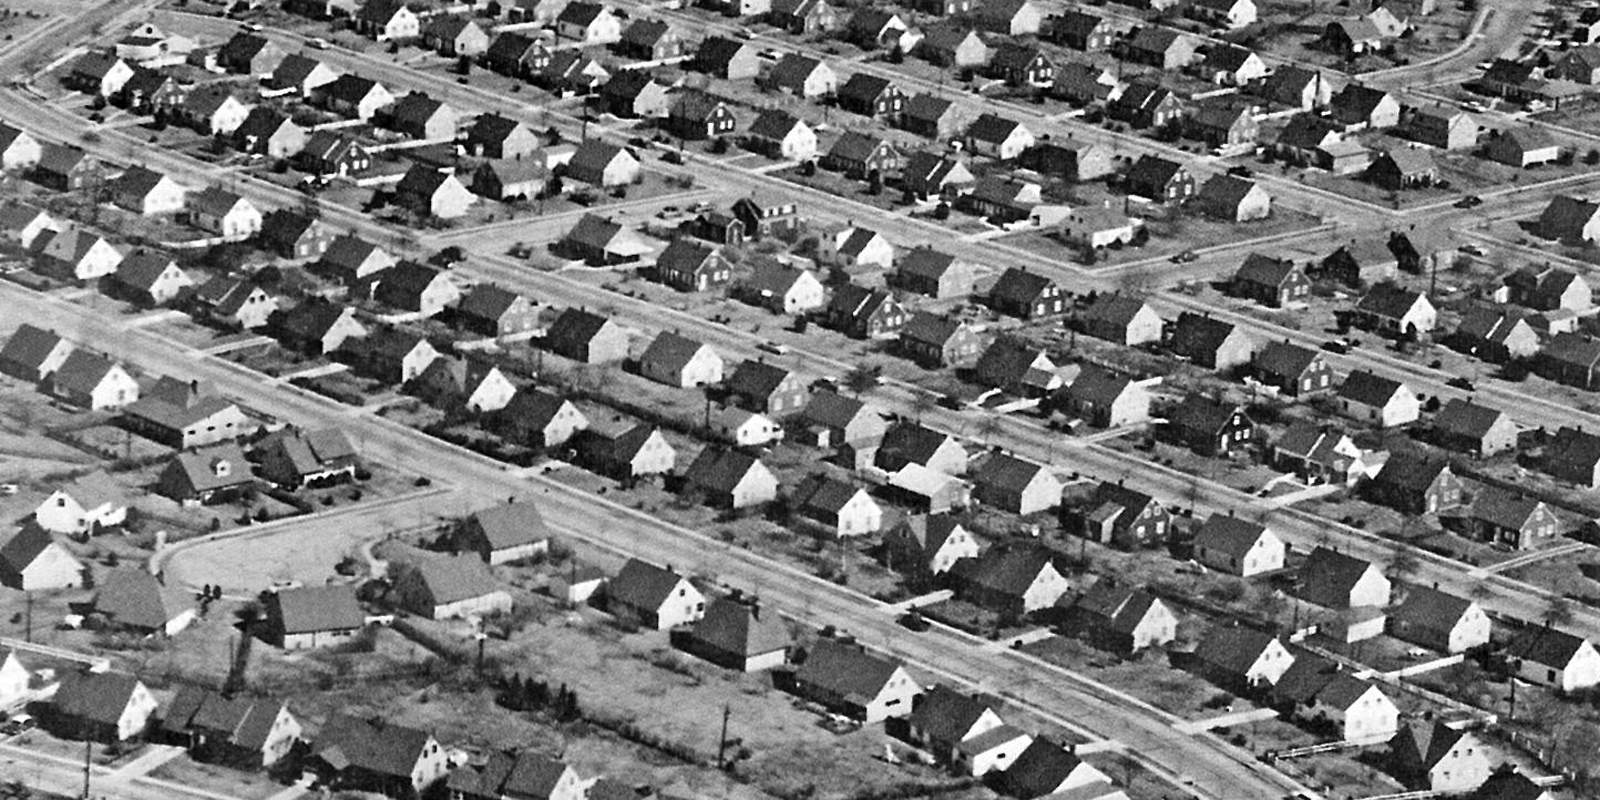 Photograph of lines of identical-looking houses in even rows.